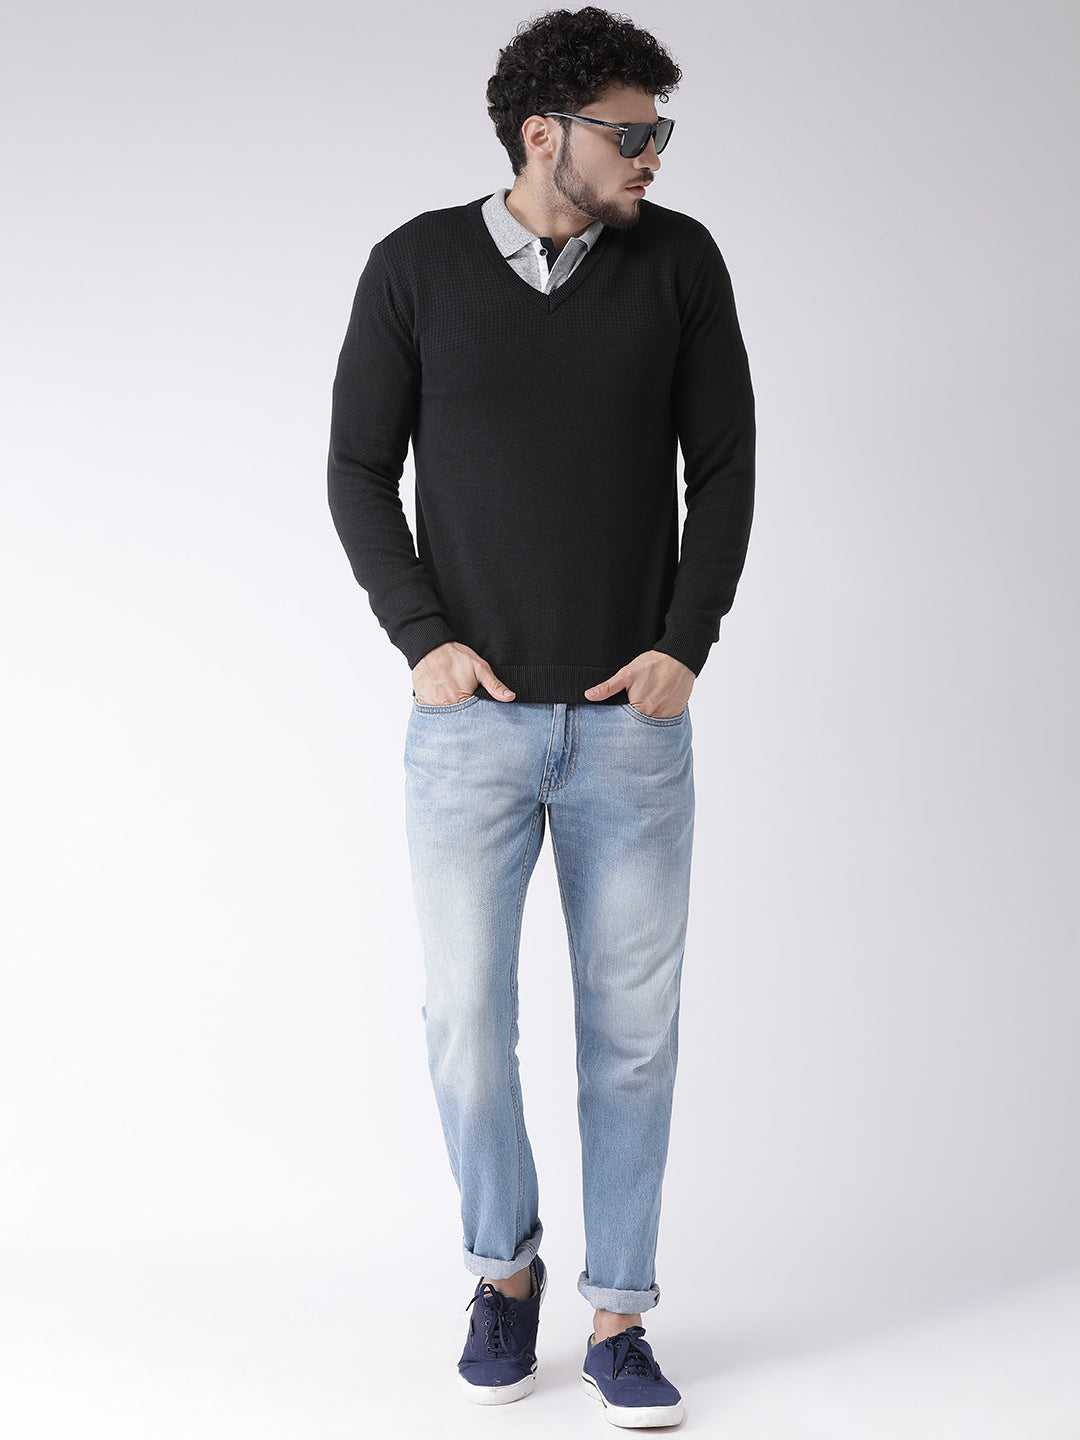 Mettle Black Sweater for Men